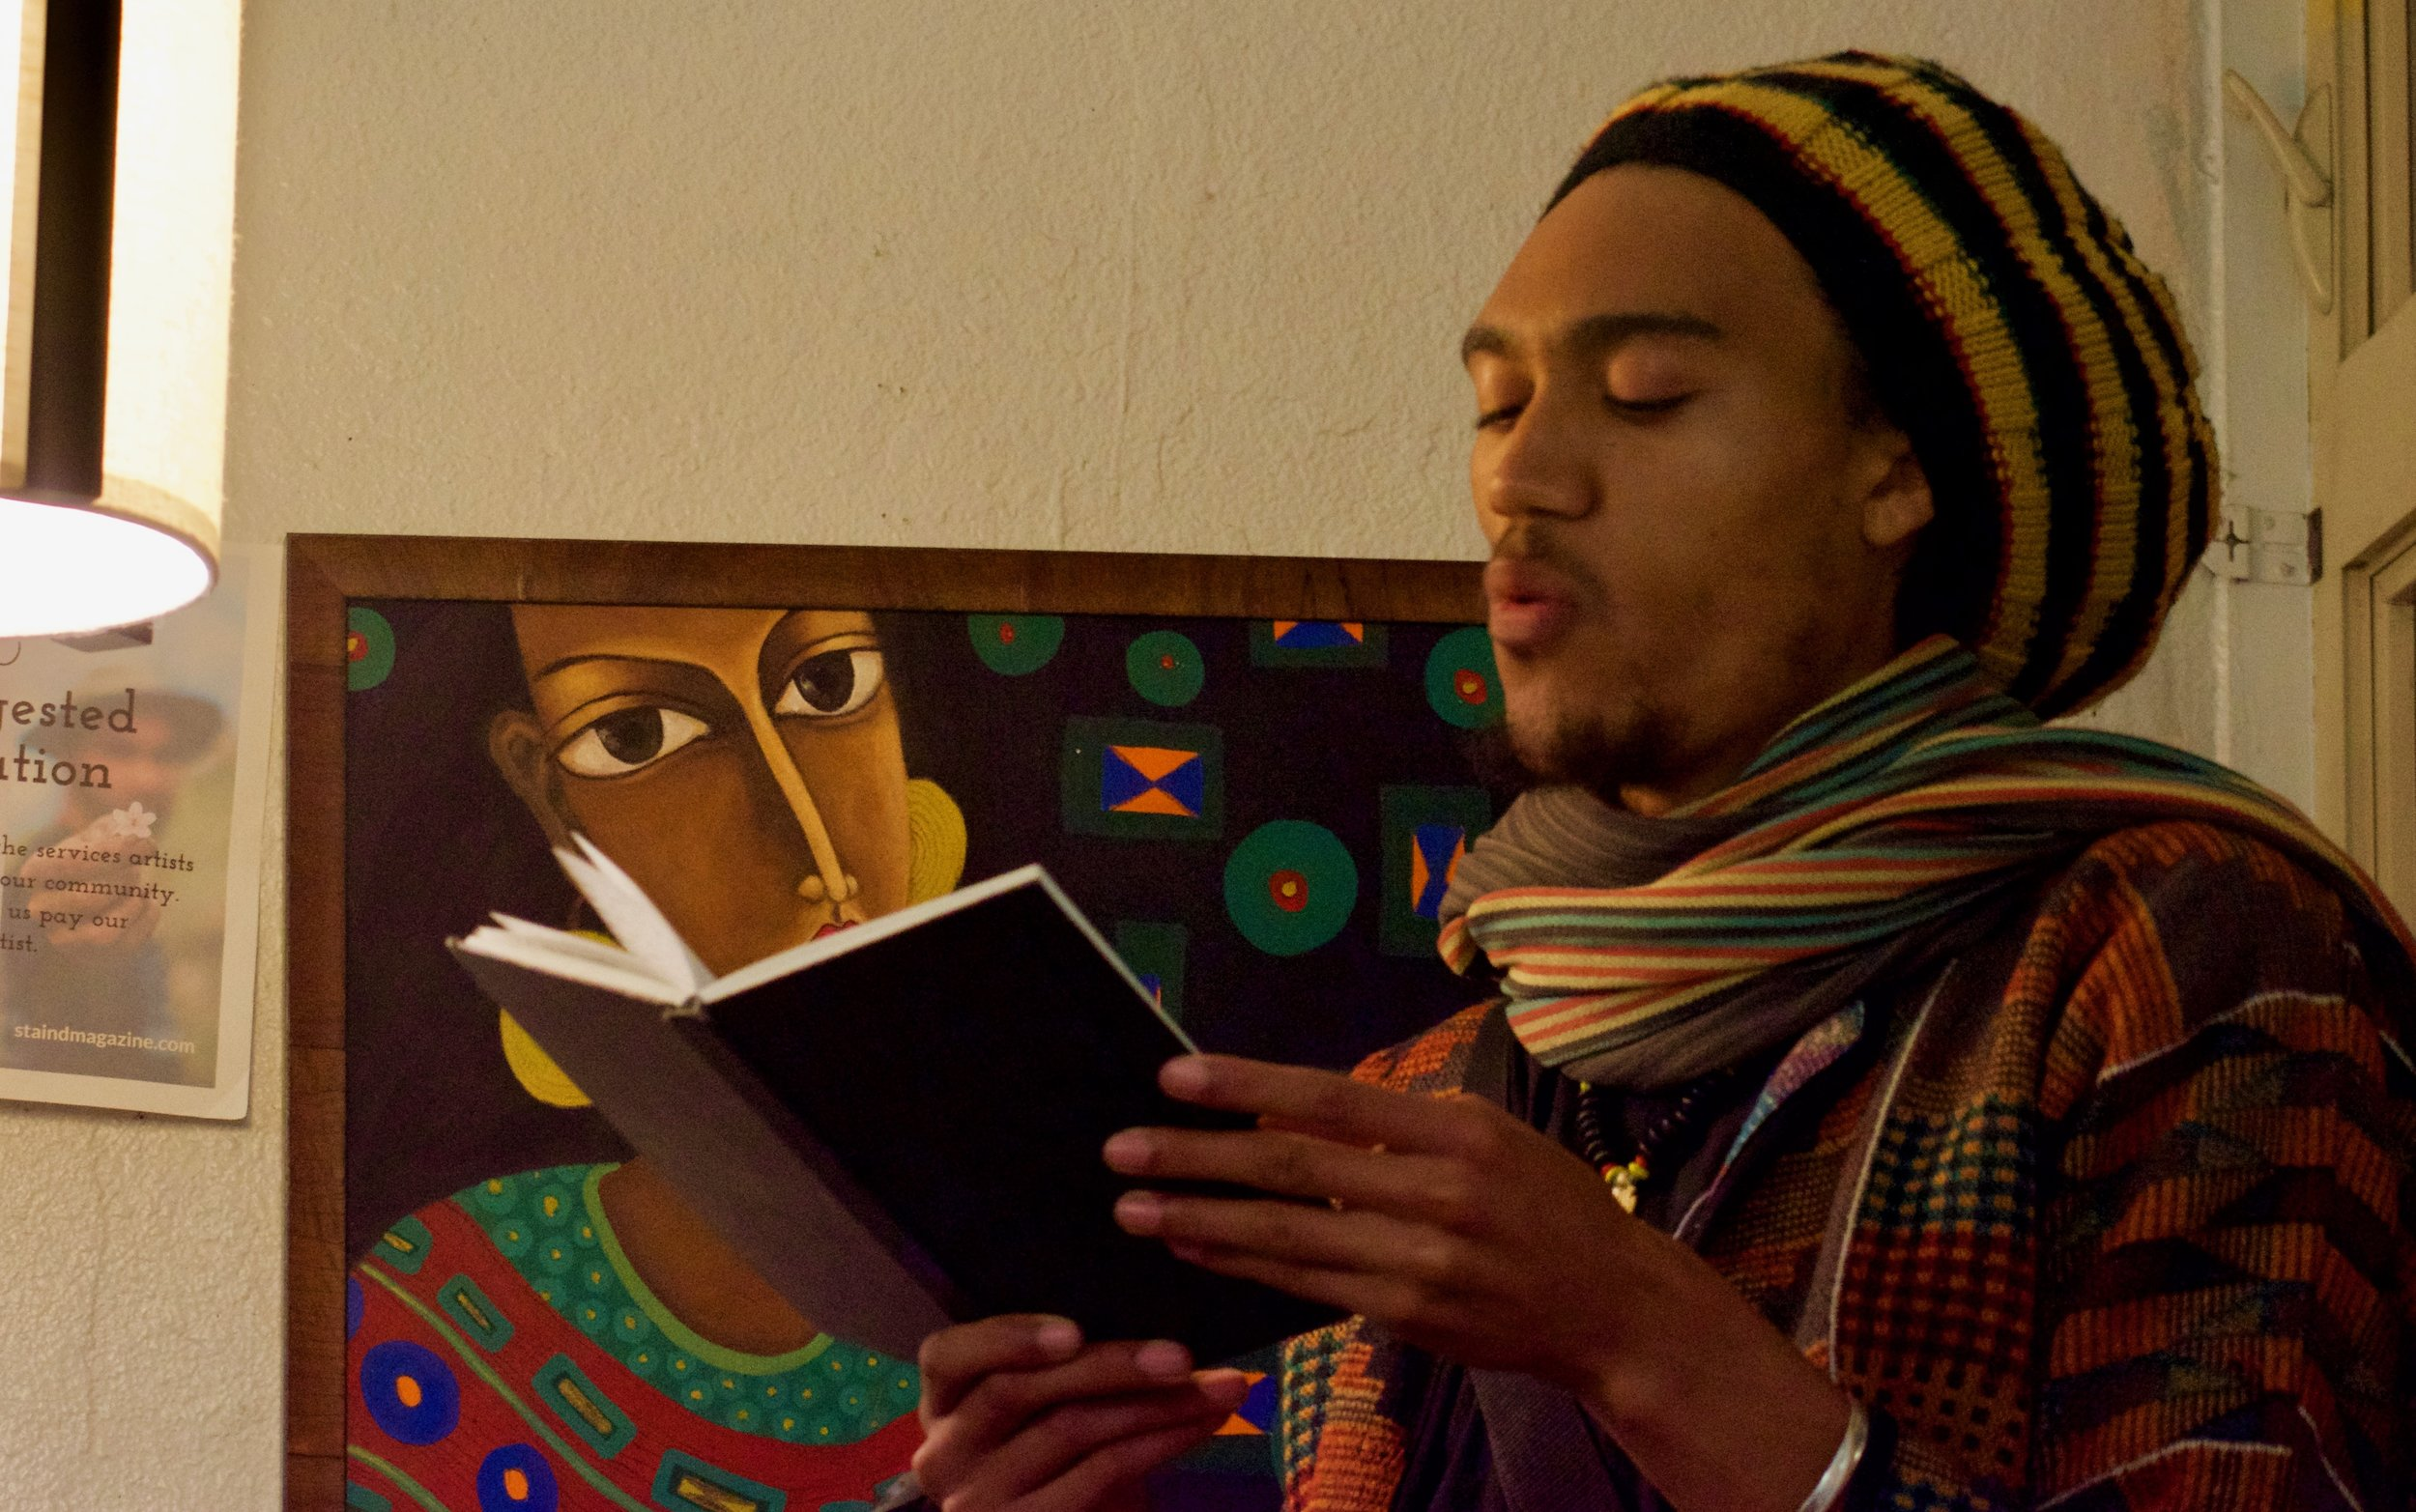 Akilkuumba reads at Stain'd Arts open mic at Whittier Cafe